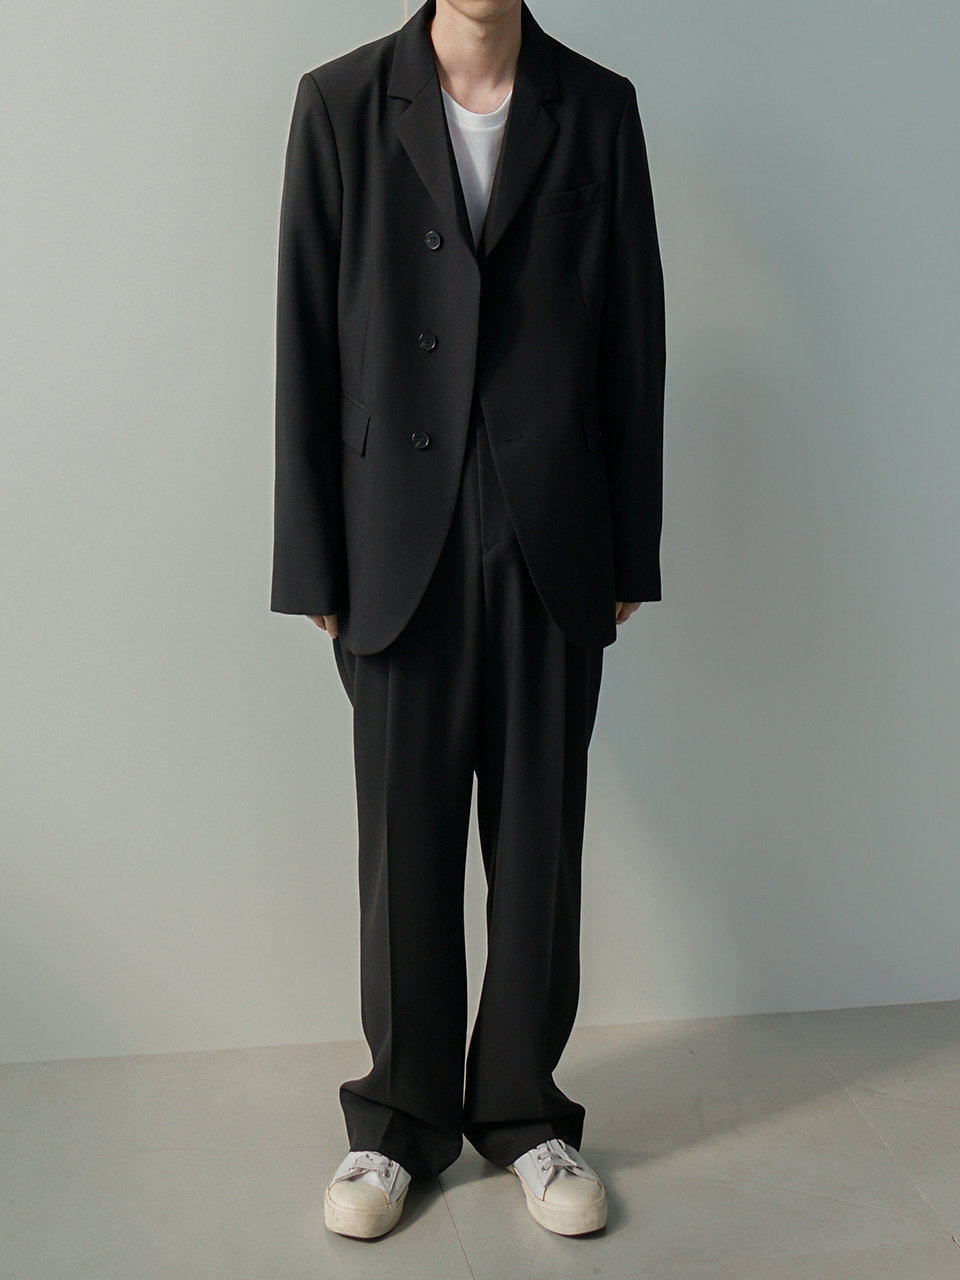 Low Unbalanced Suit Black